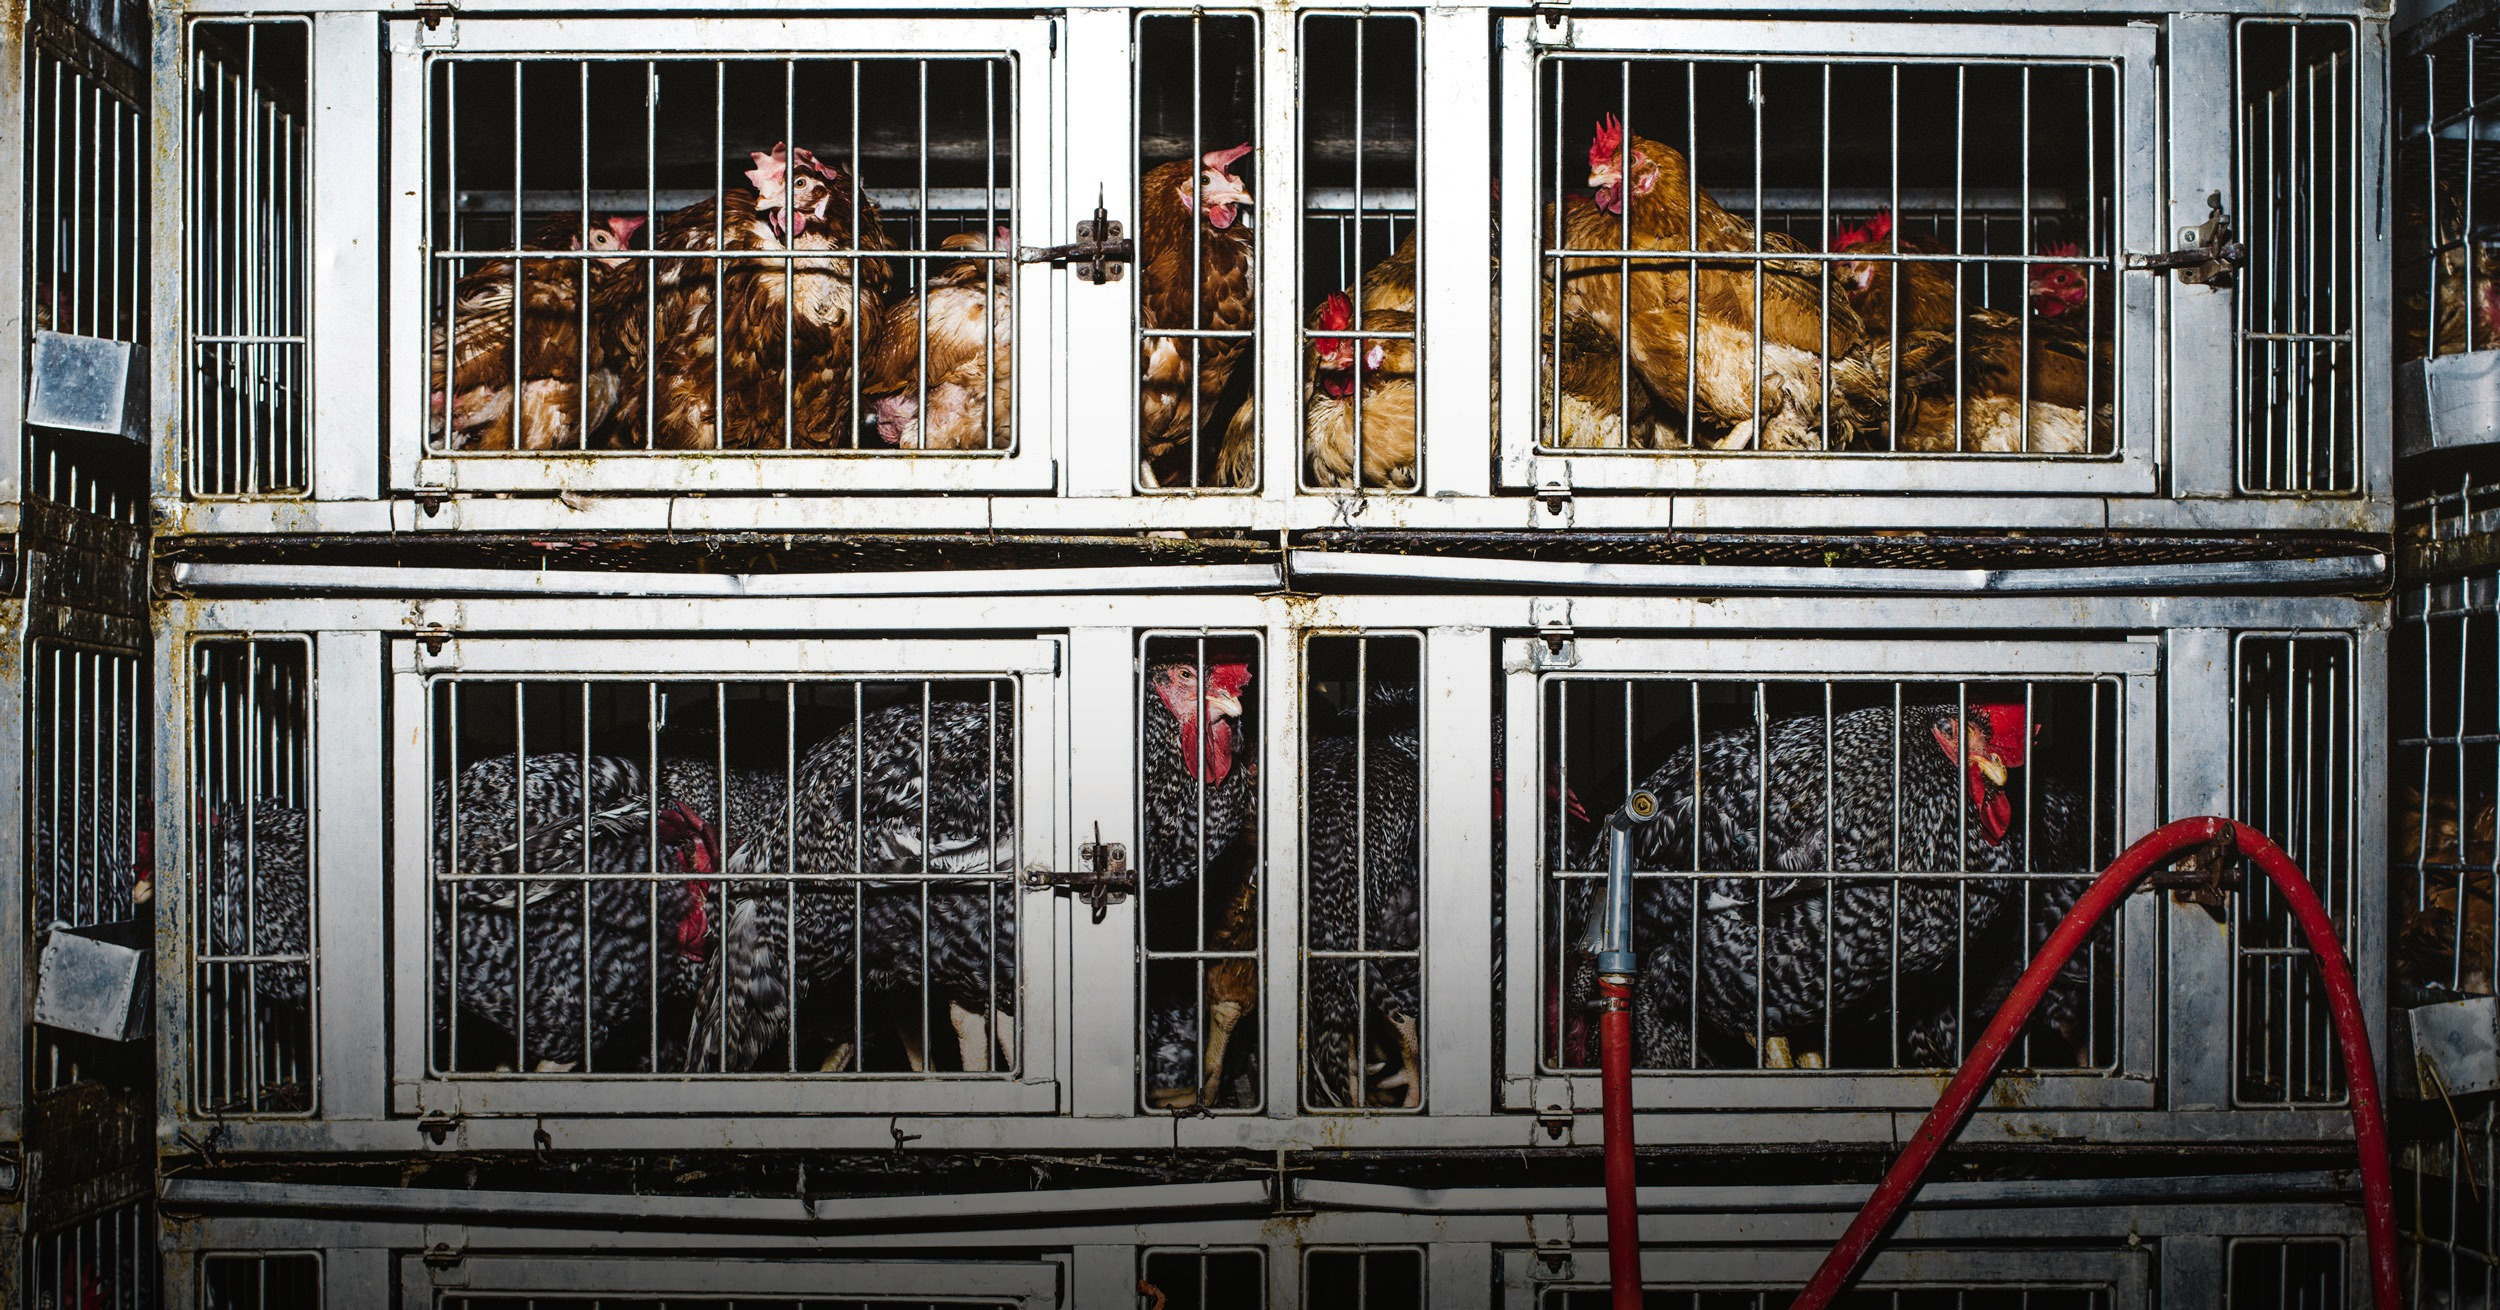 The messy business of NYC's live poultry industry